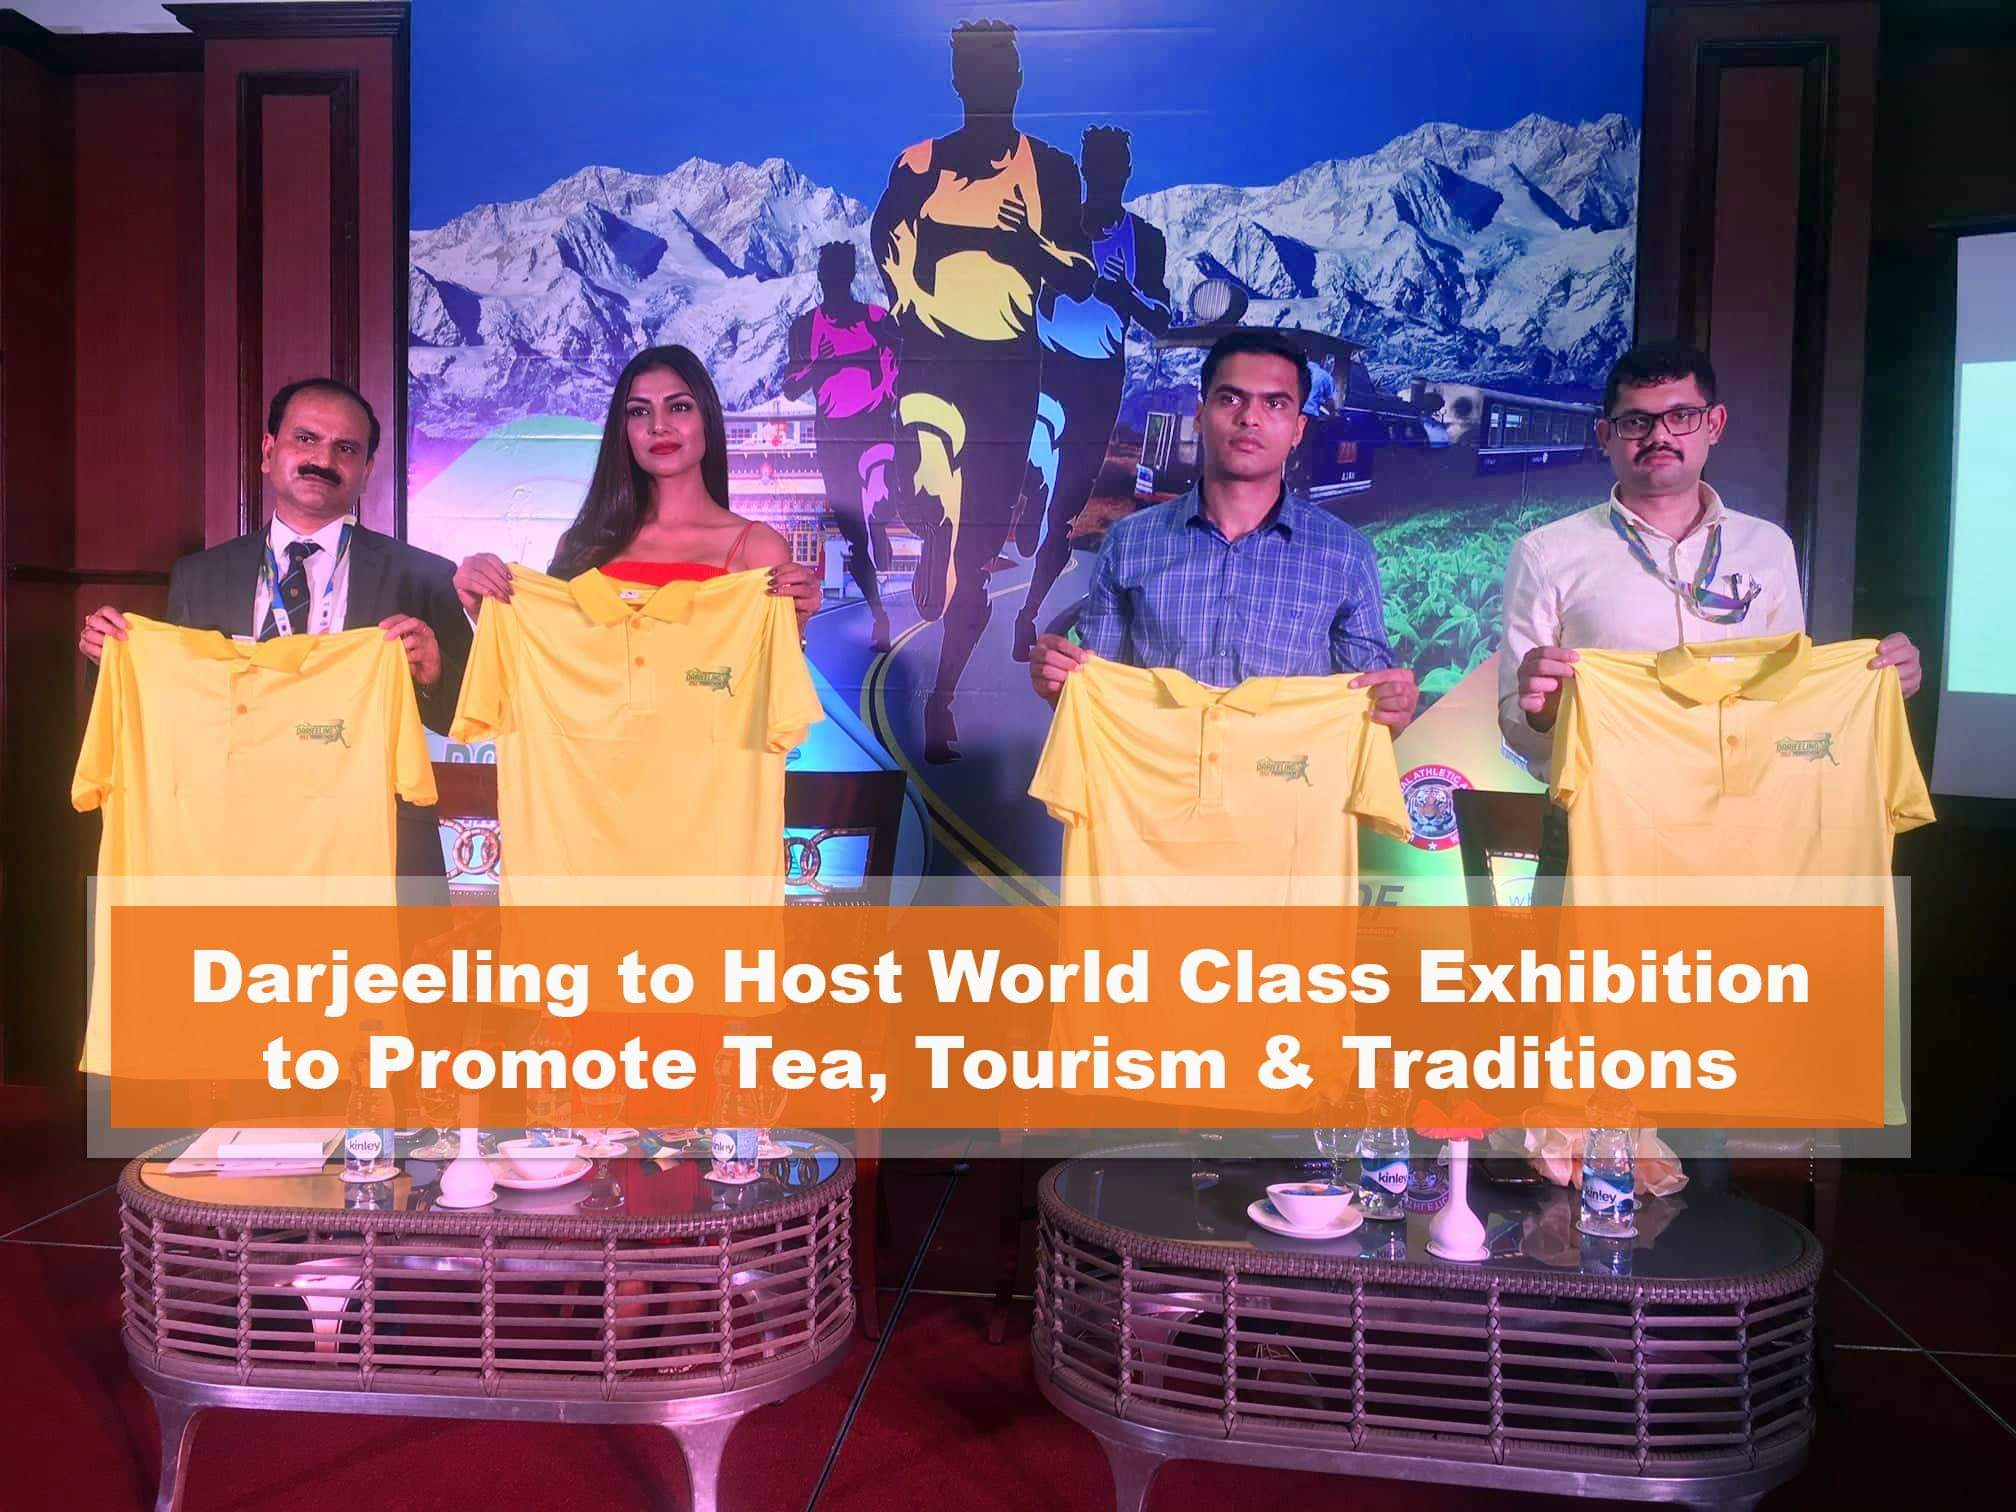 Darjeeling to Host World Class Exhibition to Promote Tea, Tourism & Traditions